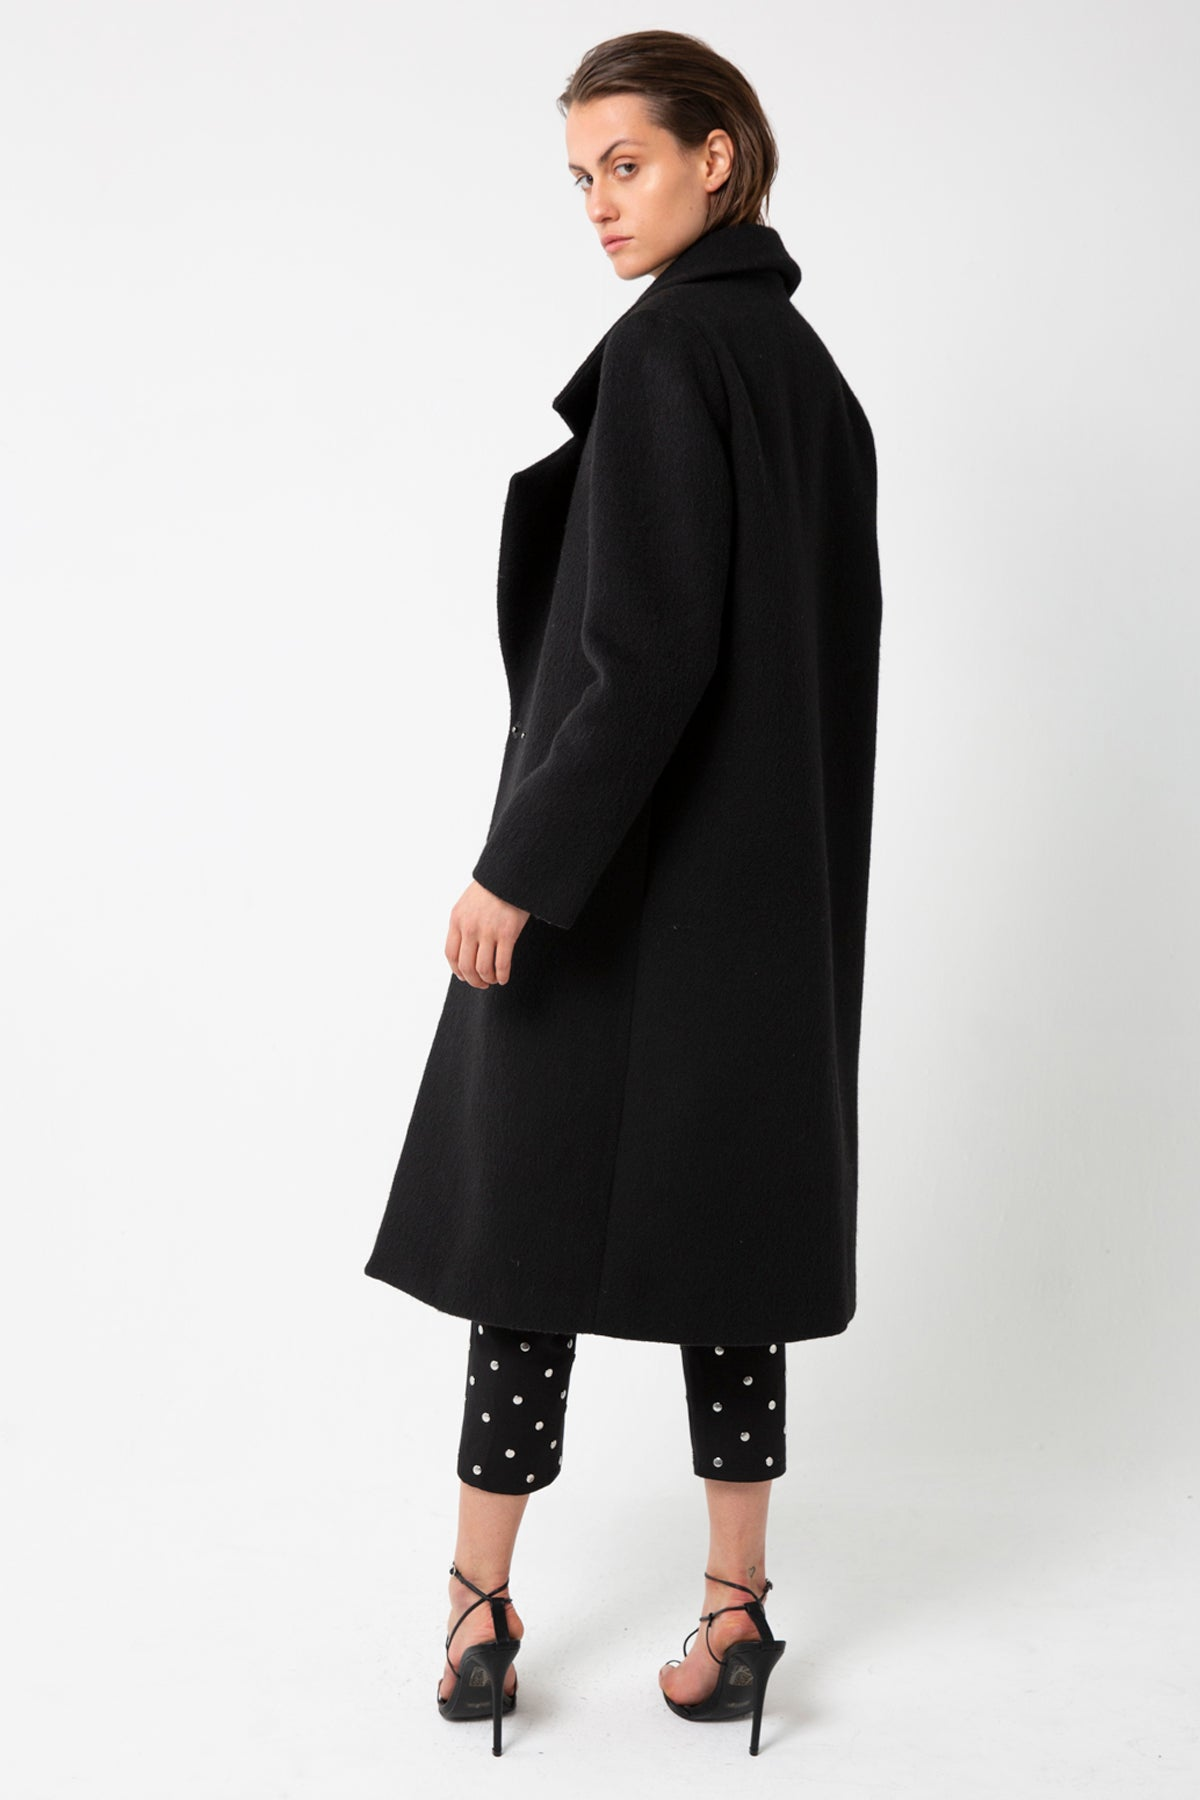 UNDER COVER COAT | BLACK